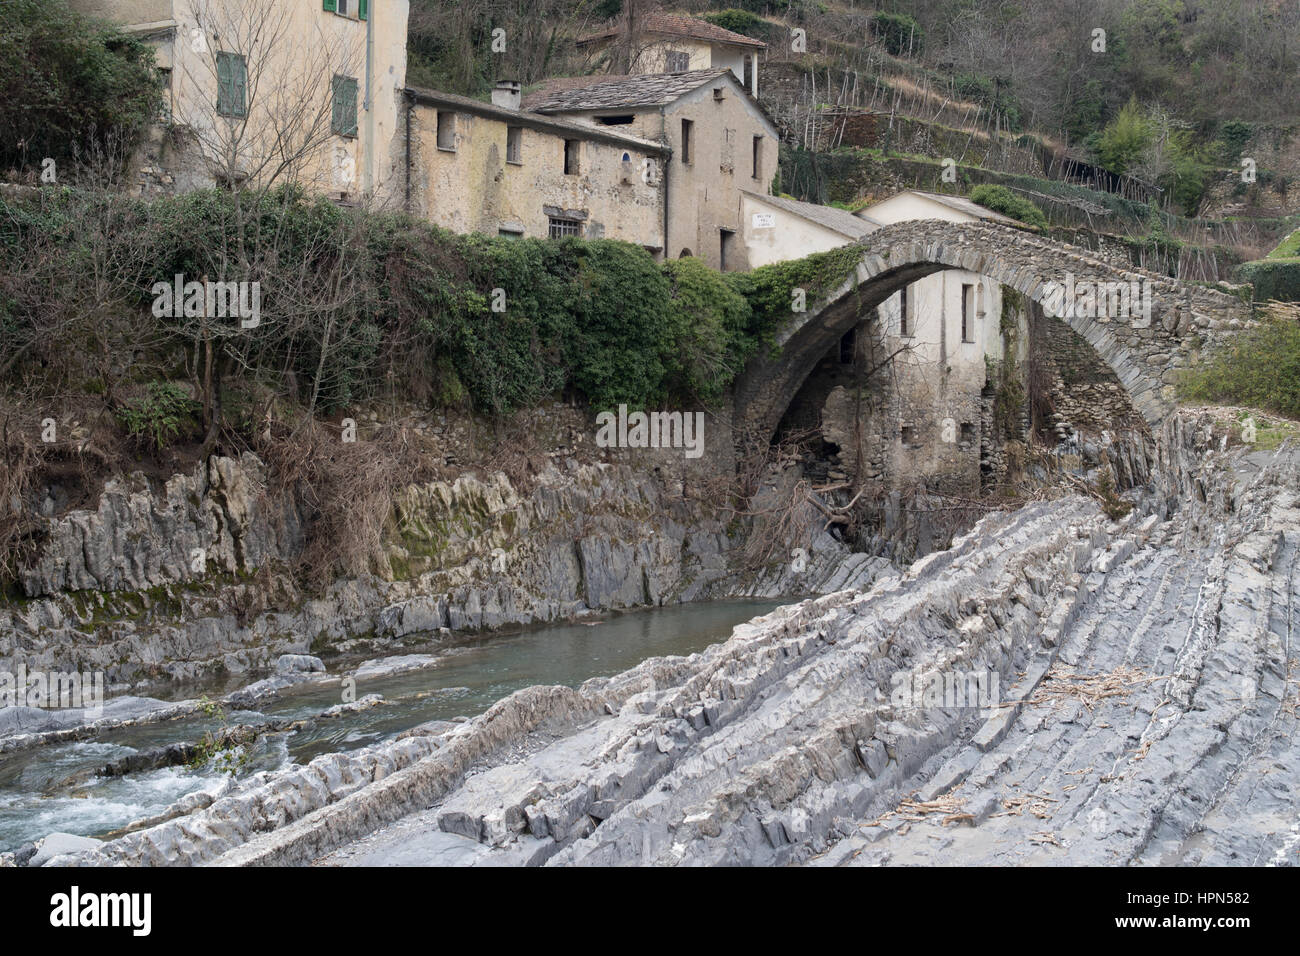 Italy, Province of Imperia, The Arch Bridge - Stock Image